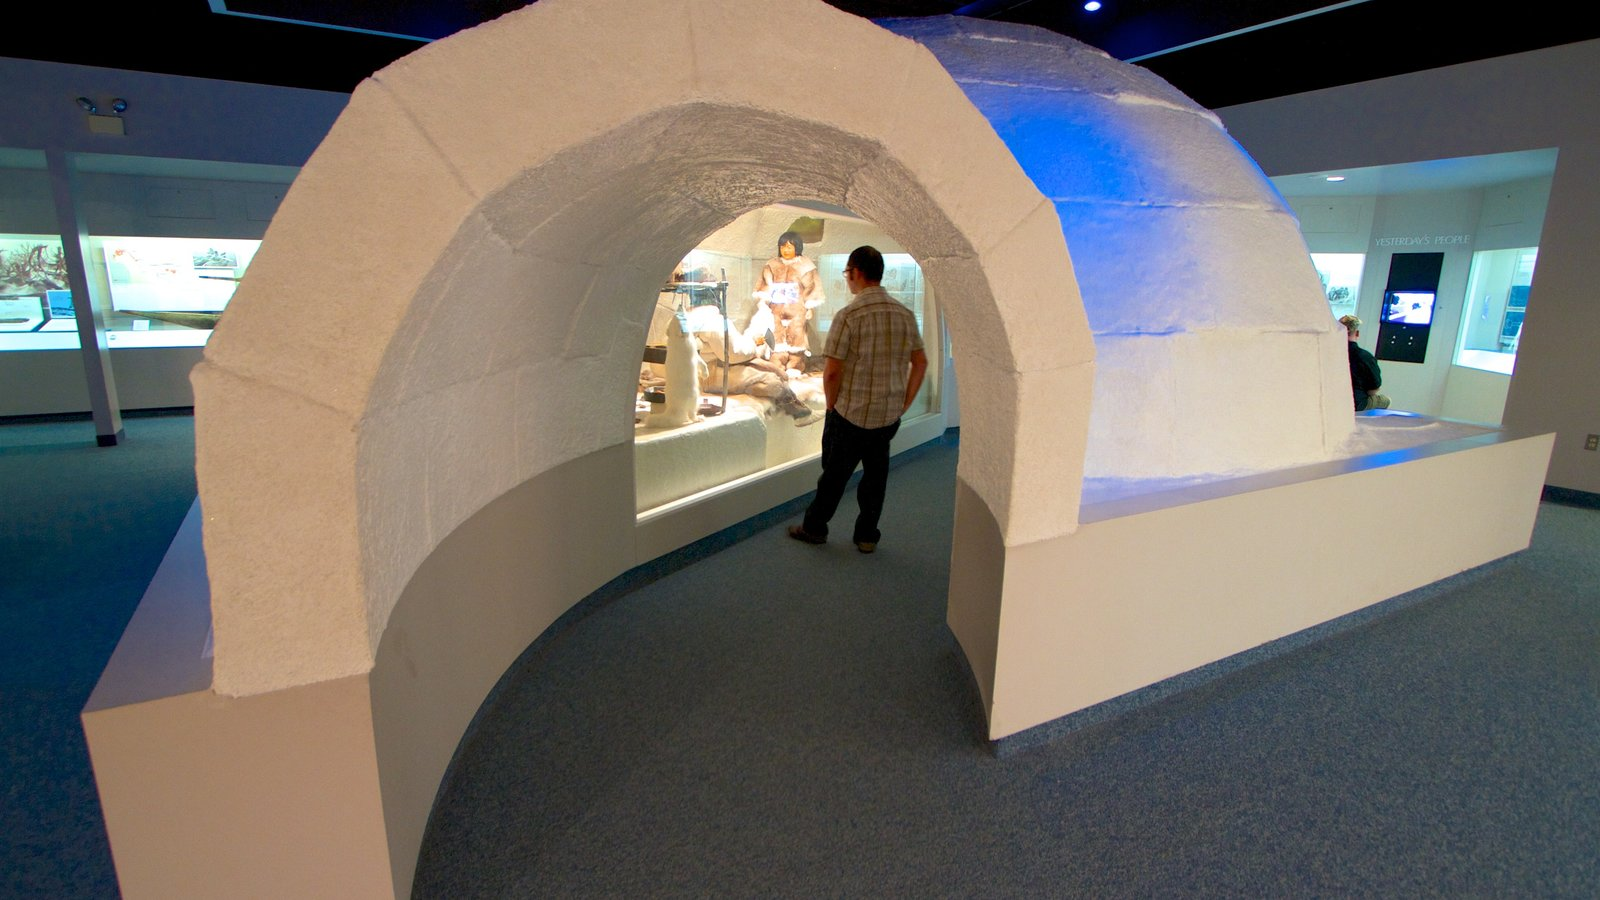 Carnegie Museum of Natural History showing interior views as well as an individual male